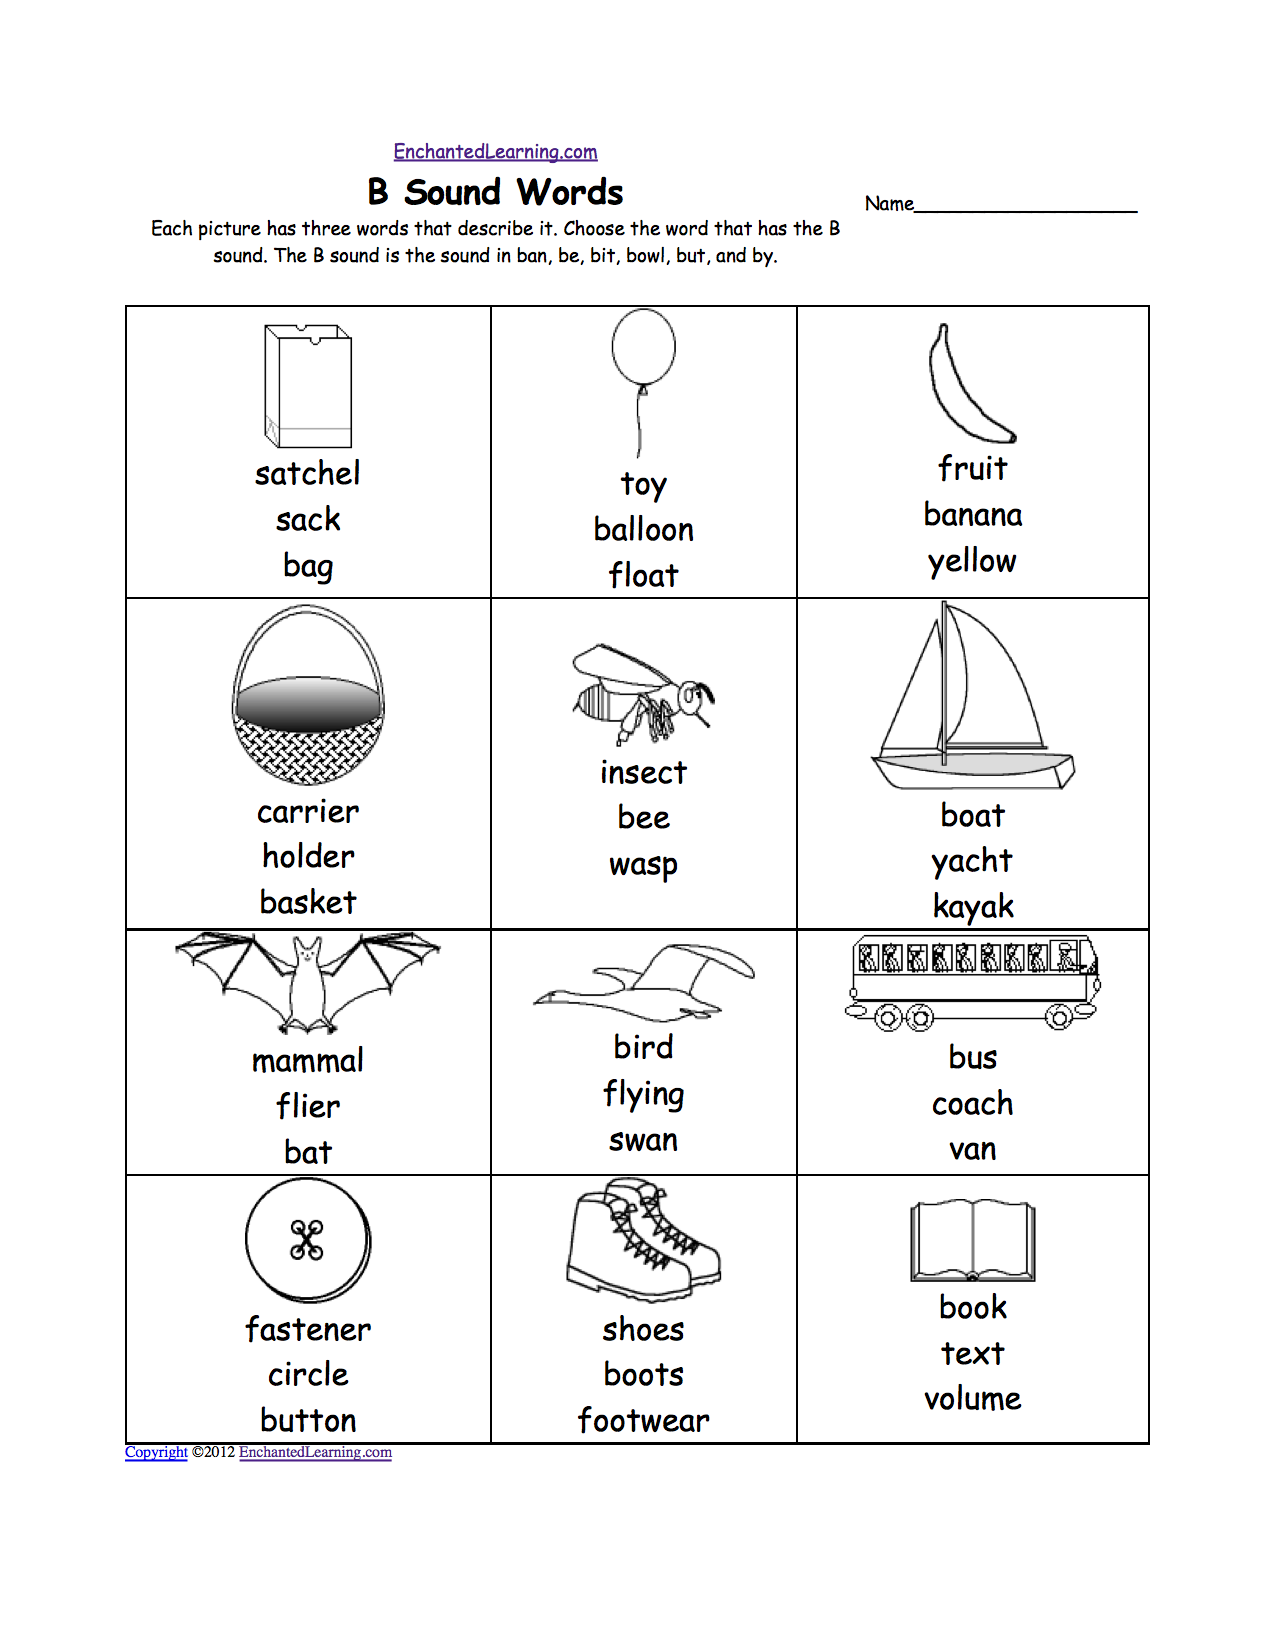 Aldiablosus  Unique Phonics Worksheets Multiple Choice Worksheets To Print  With Exciting Quotbquot Sound Phonics Worksheet Multiple Choice Each Picture Has Three Words That Describe It Choose The Word That Has A Quotbquot Sound The Quotbquot Sound Is The Sound  With Astonishing Free Printable Science Worksheets For Th Grade Also Long A Words Worksheets In Addition English Class Worksheets And Online Kumon Worksheets As Well As Math Worksheets Works Additionally Dissolving Worksheets From Enchantedlearningcom With Aldiablosus  Exciting Phonics Worksheets Multiple Choice Worksheets To Print  With Astonishing Quotbquot Sound Phonics Worksheet Multiple Choice Each Picture Has Three Words That Describe It Choose The Word That Has A Quotbquot Sound The Quotbquot Sound Is The Sound  And Unique Free Printable Science Worksheets For Th Grade Also Long A Words Worksheets In Addition English Class Worksheets From Enchantedlearningcom